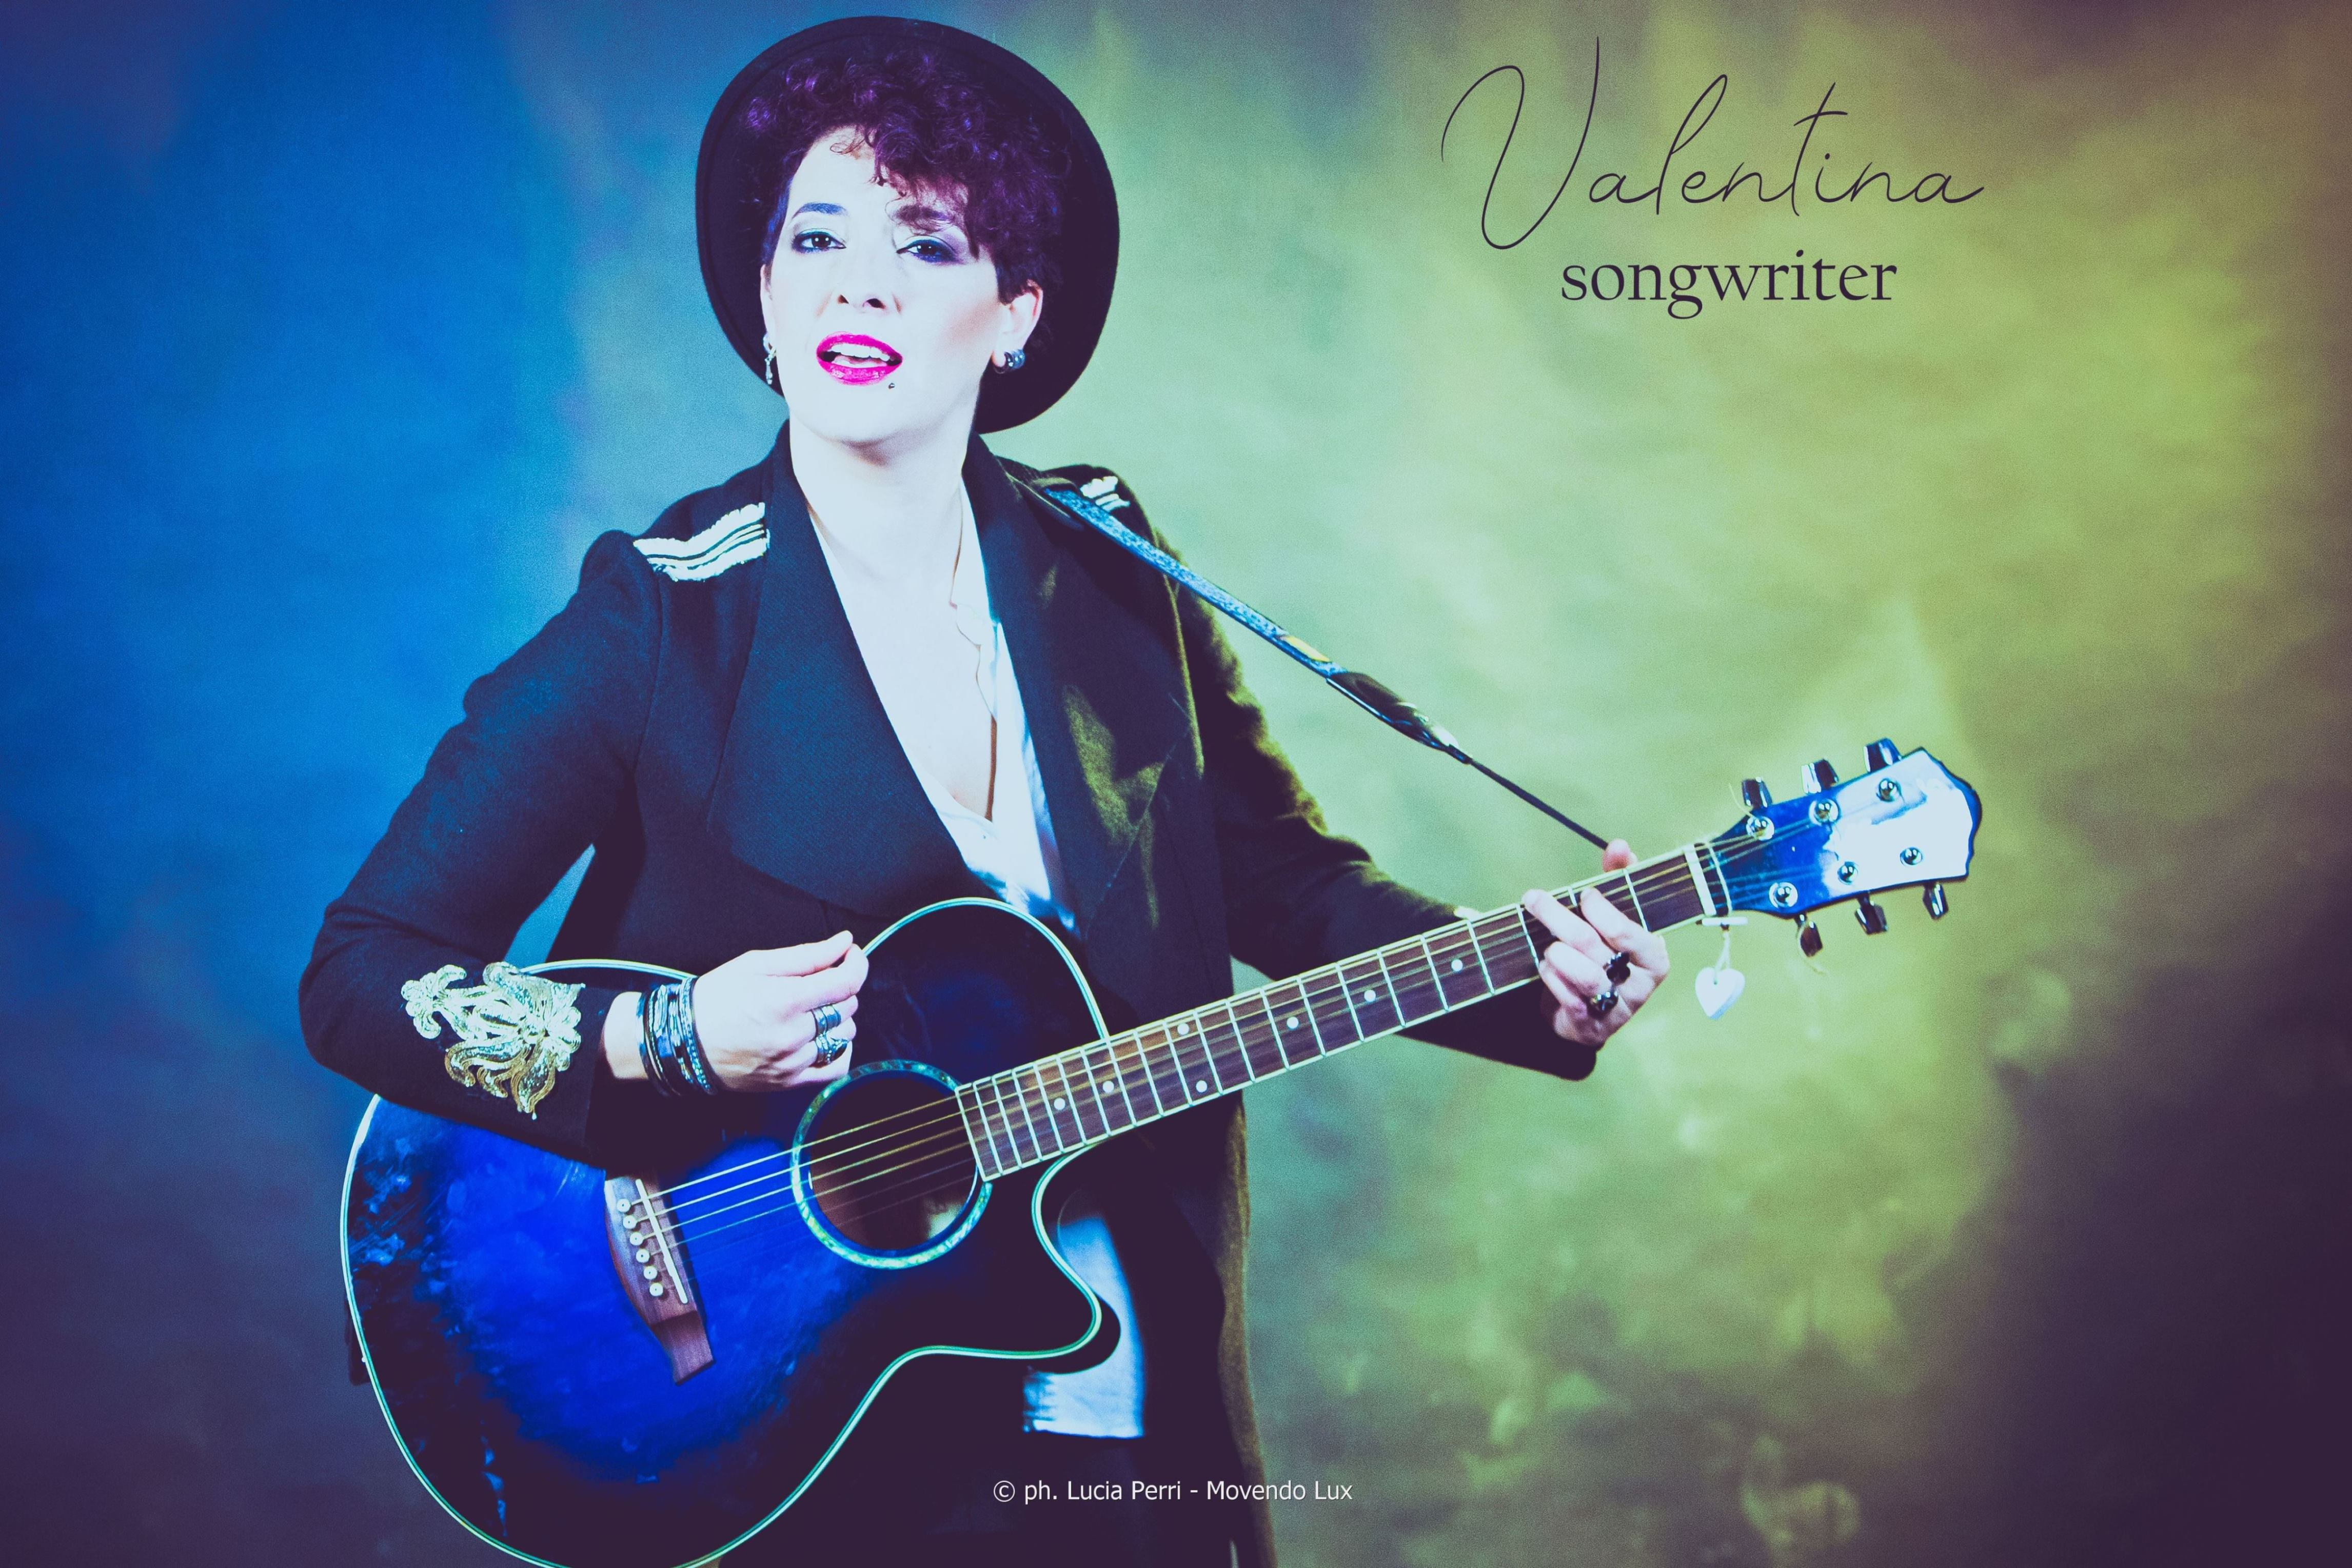 valentina-songwriter-3